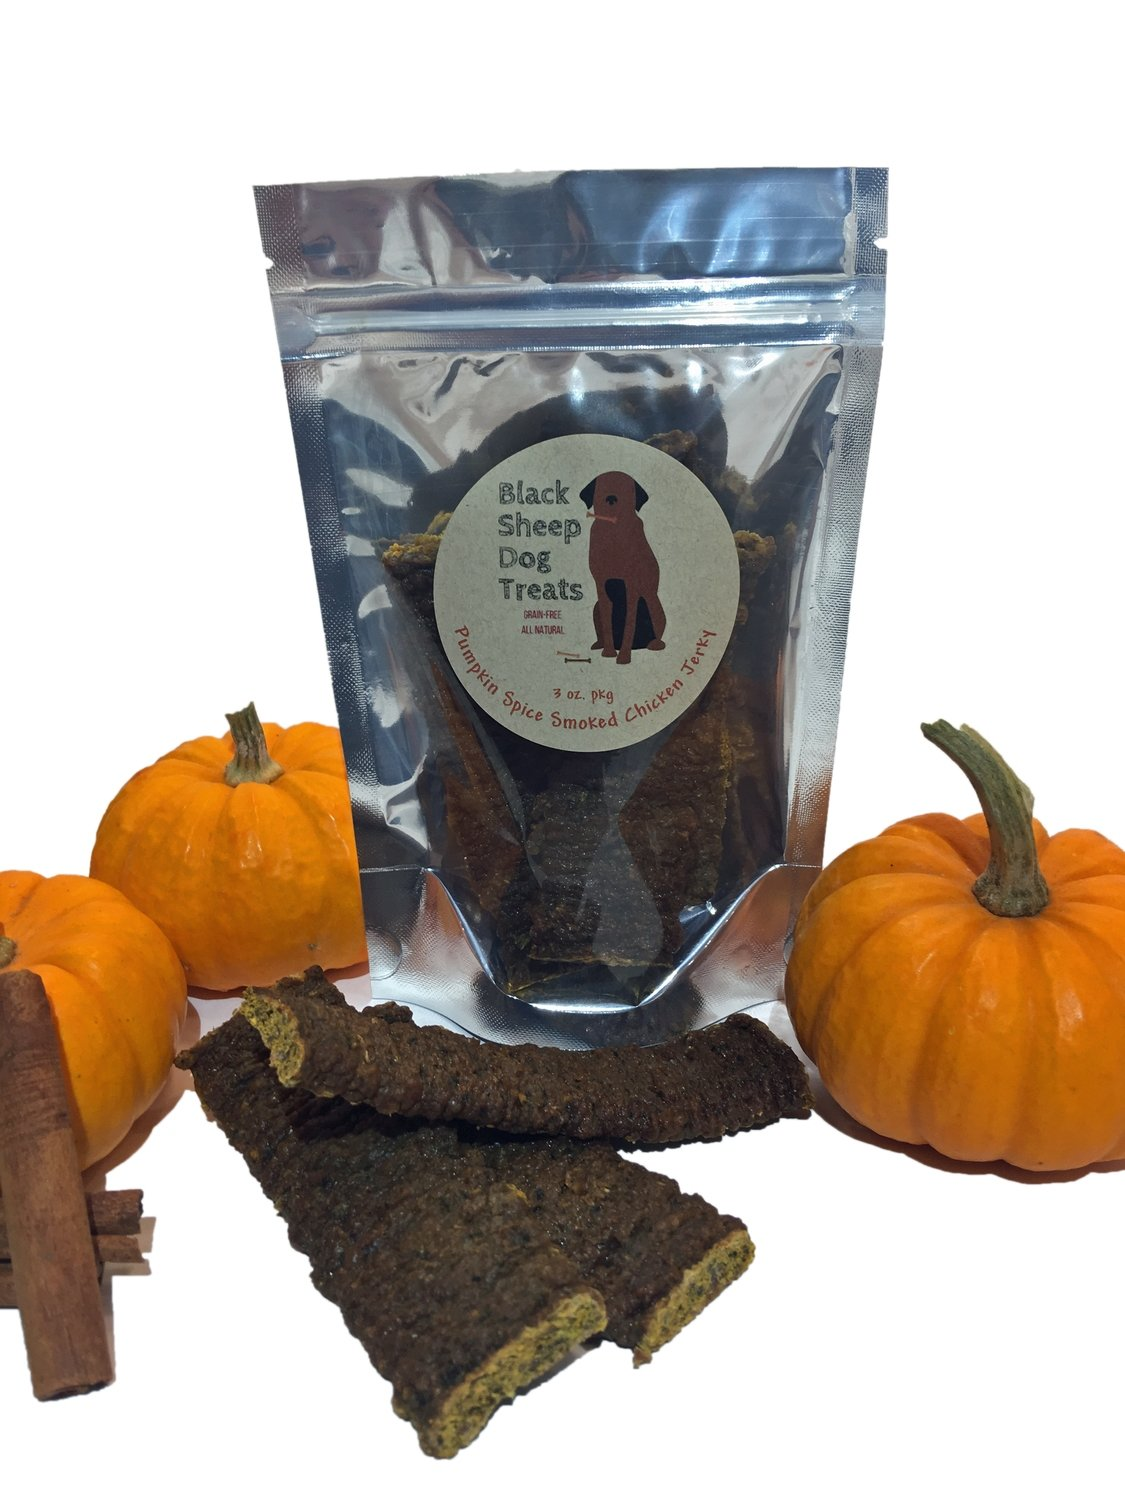 Pumpkin Spice Smoked Chicken Jerky